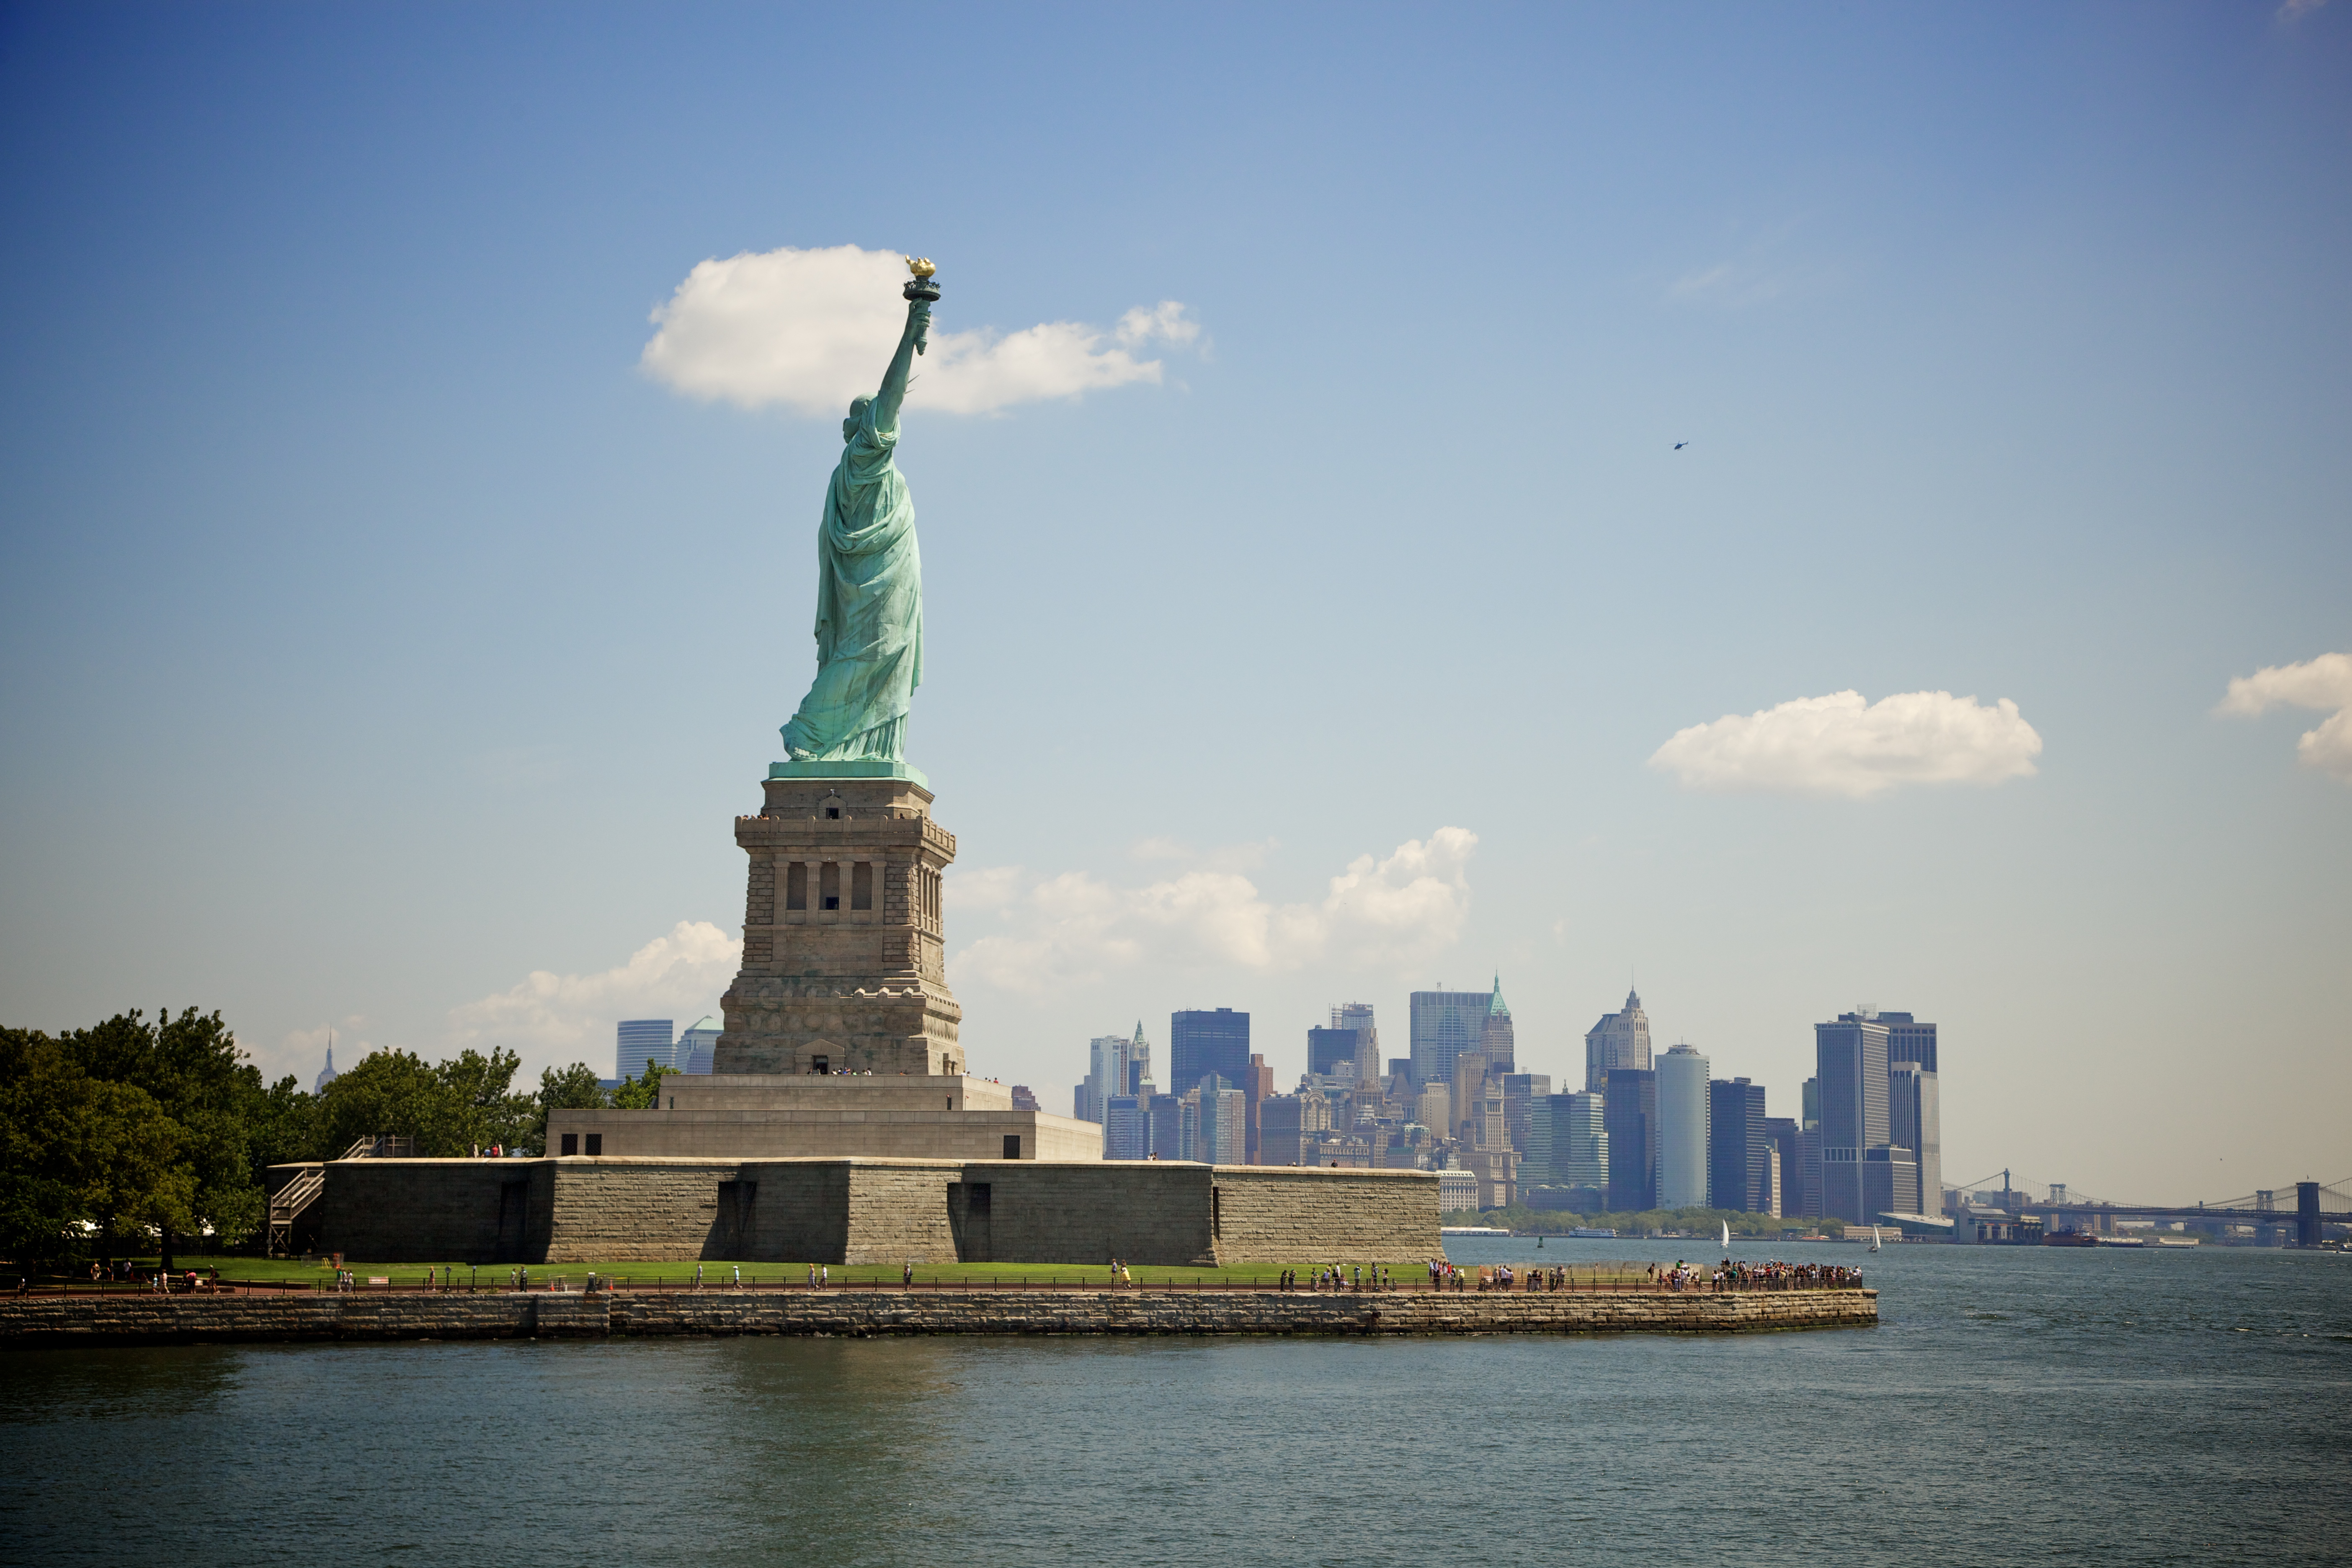 The Statue of Liberty and Ellis Island Essay